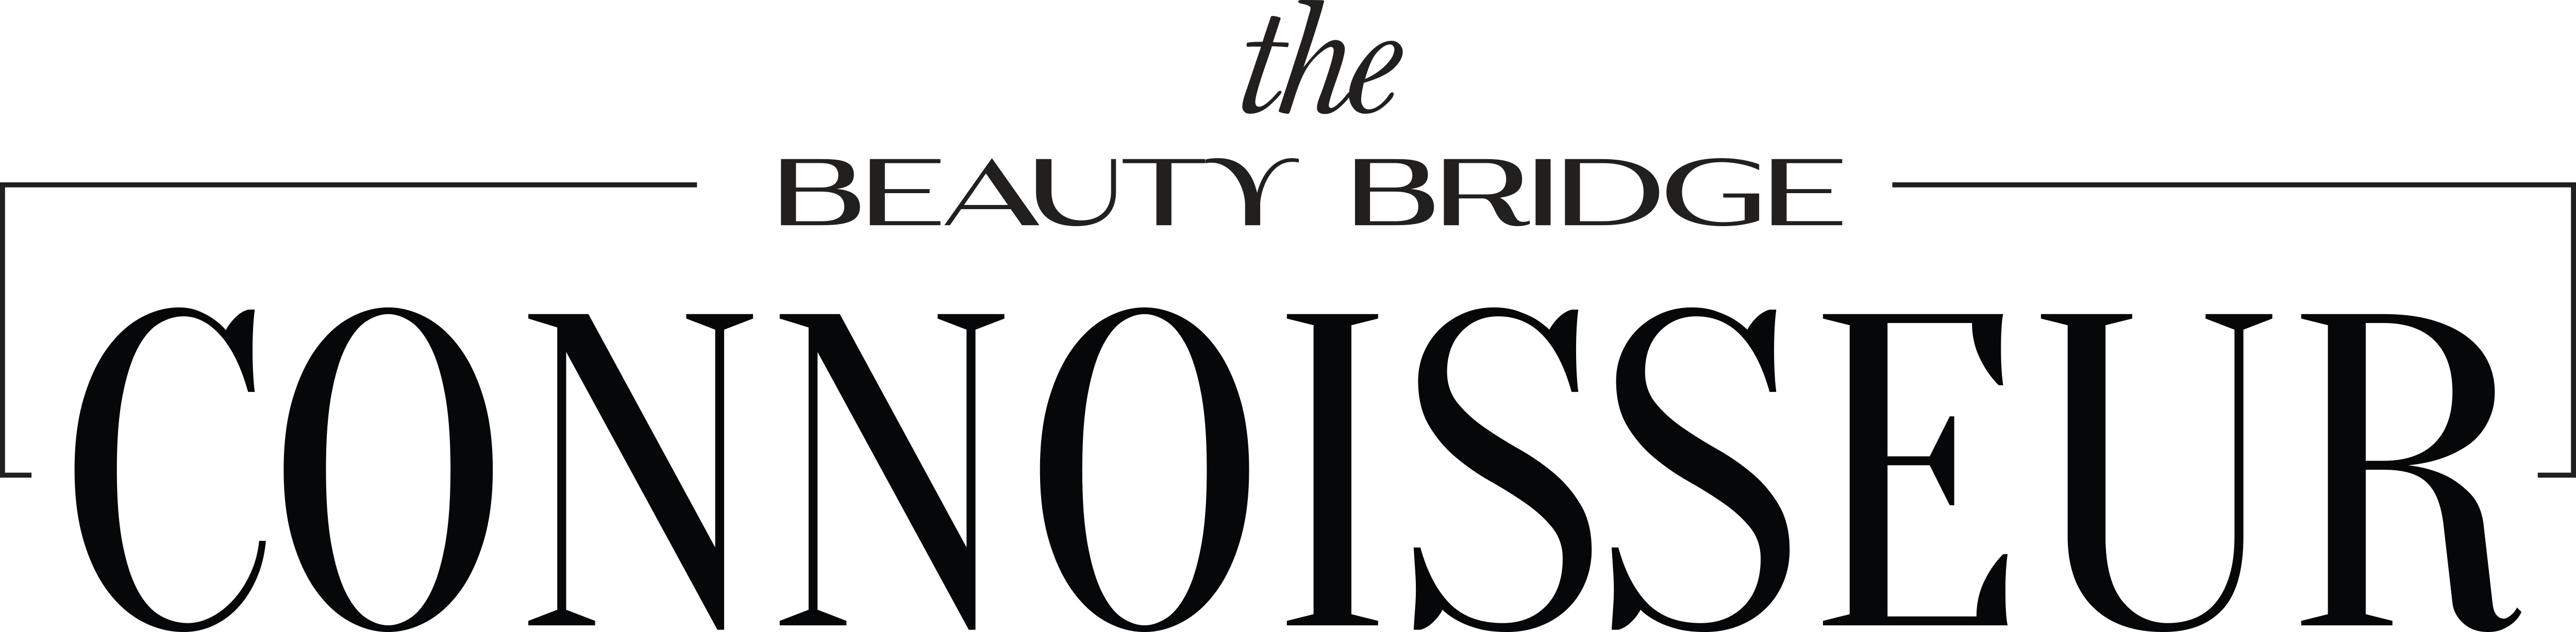 Do You Know What's Hot In The Beauty Industry?